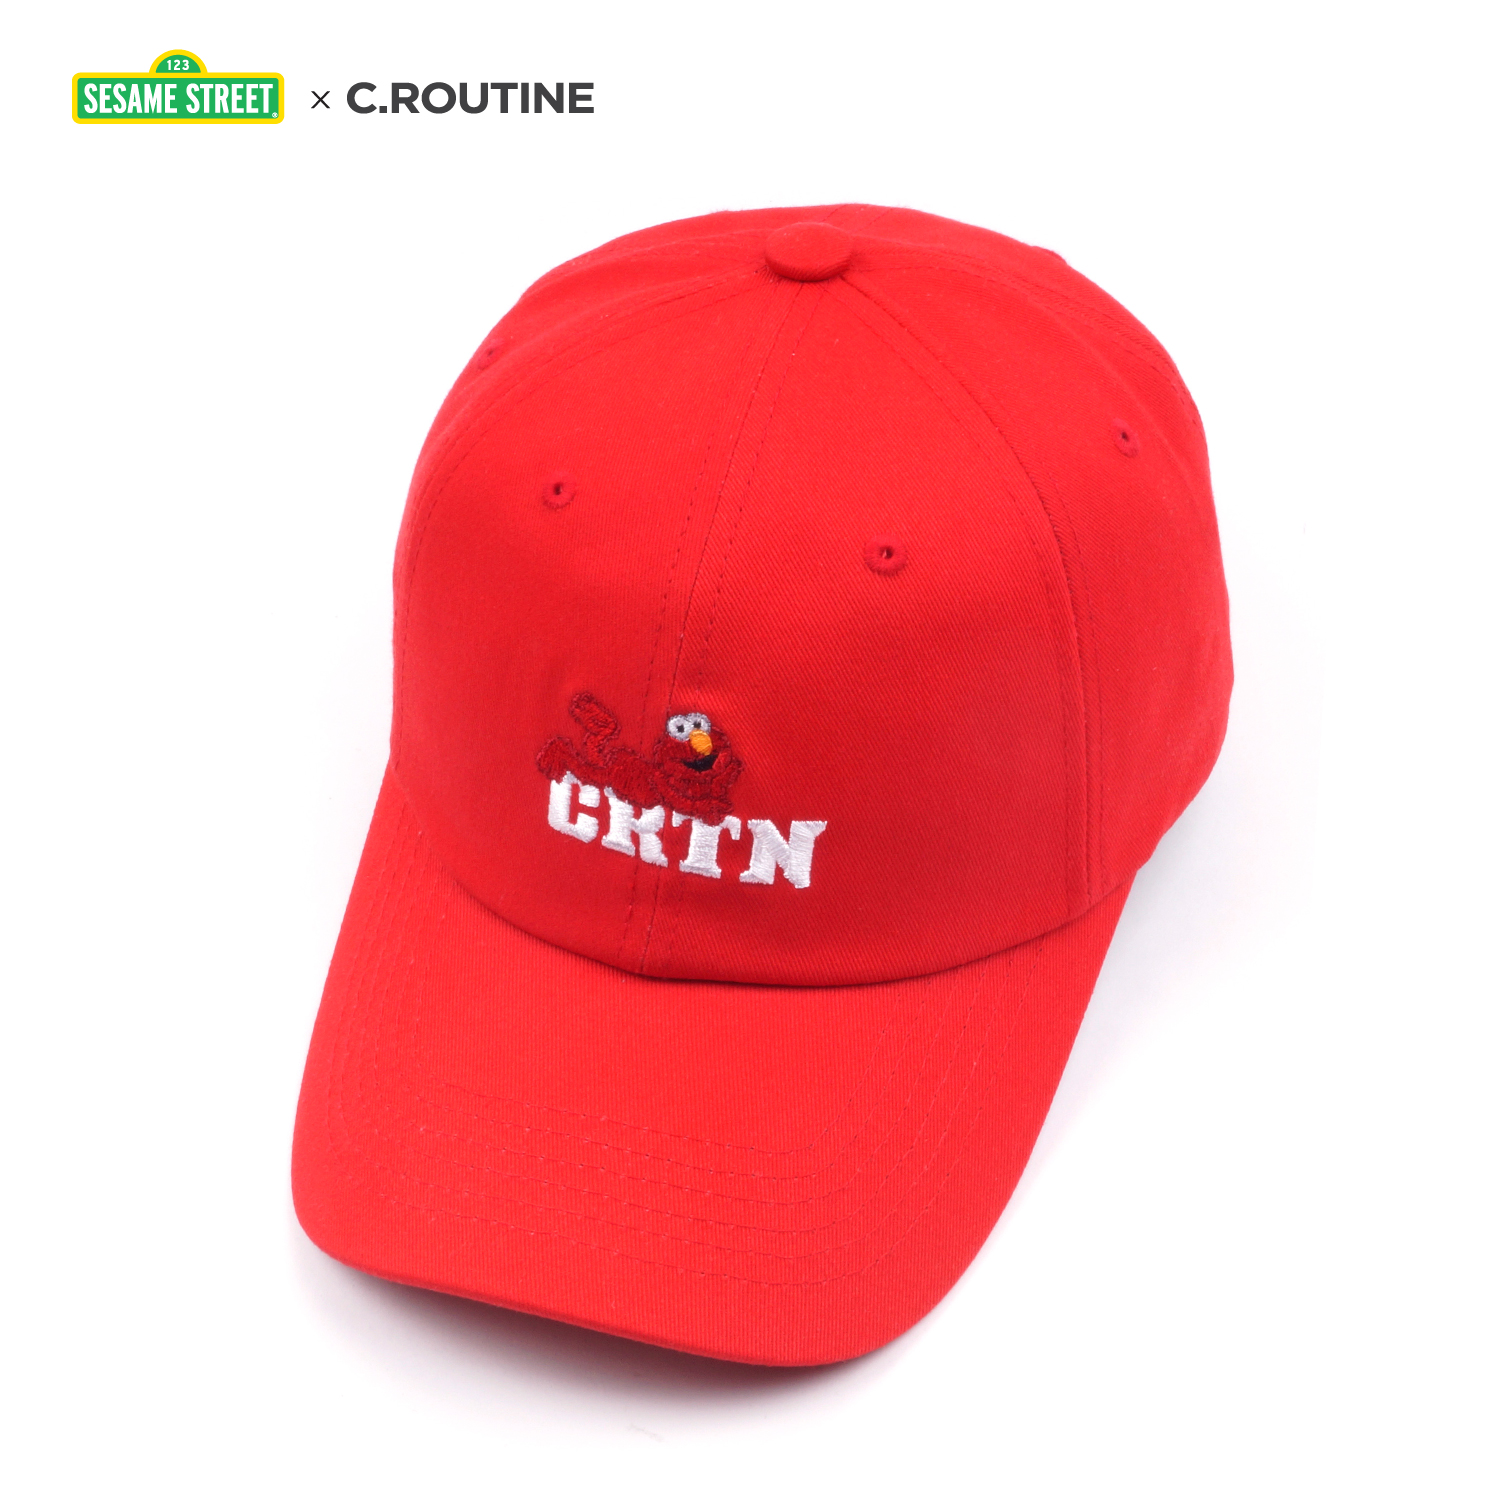 [씨루틴]CROUTINE - CRTN elmo ball cap [red] CRTN 엘모 볼캡 모자